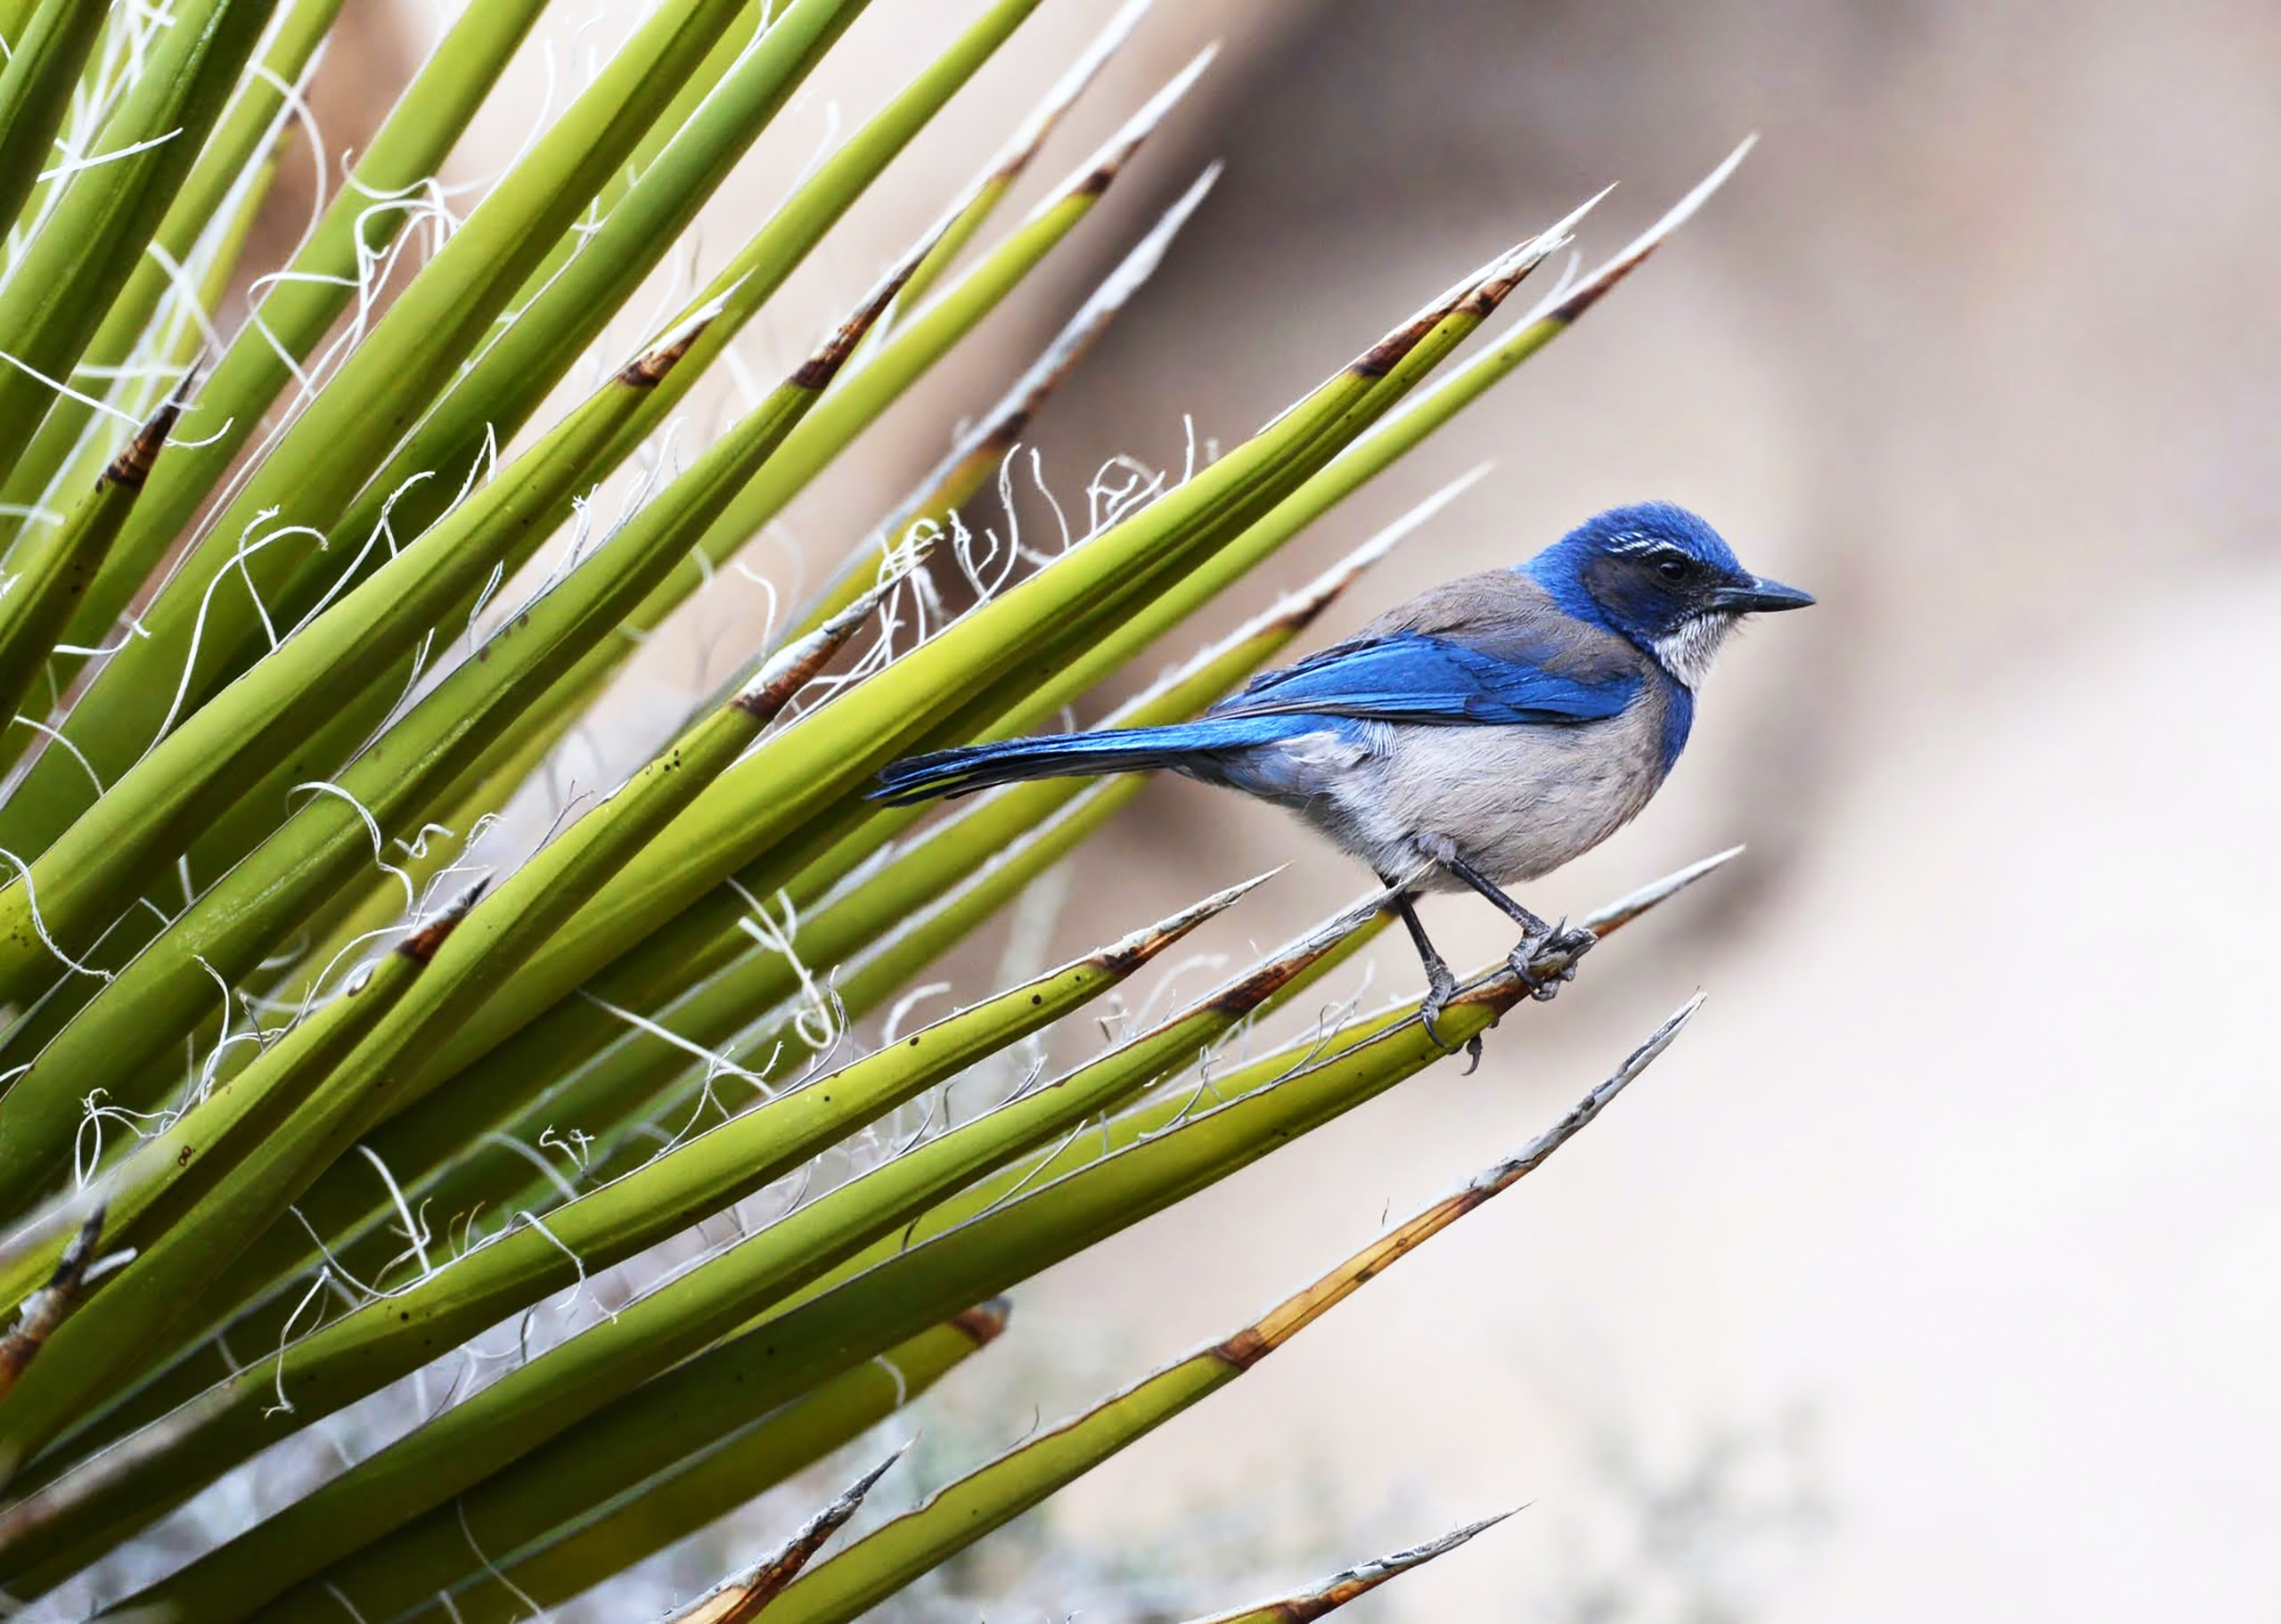 blue bird perching on grass